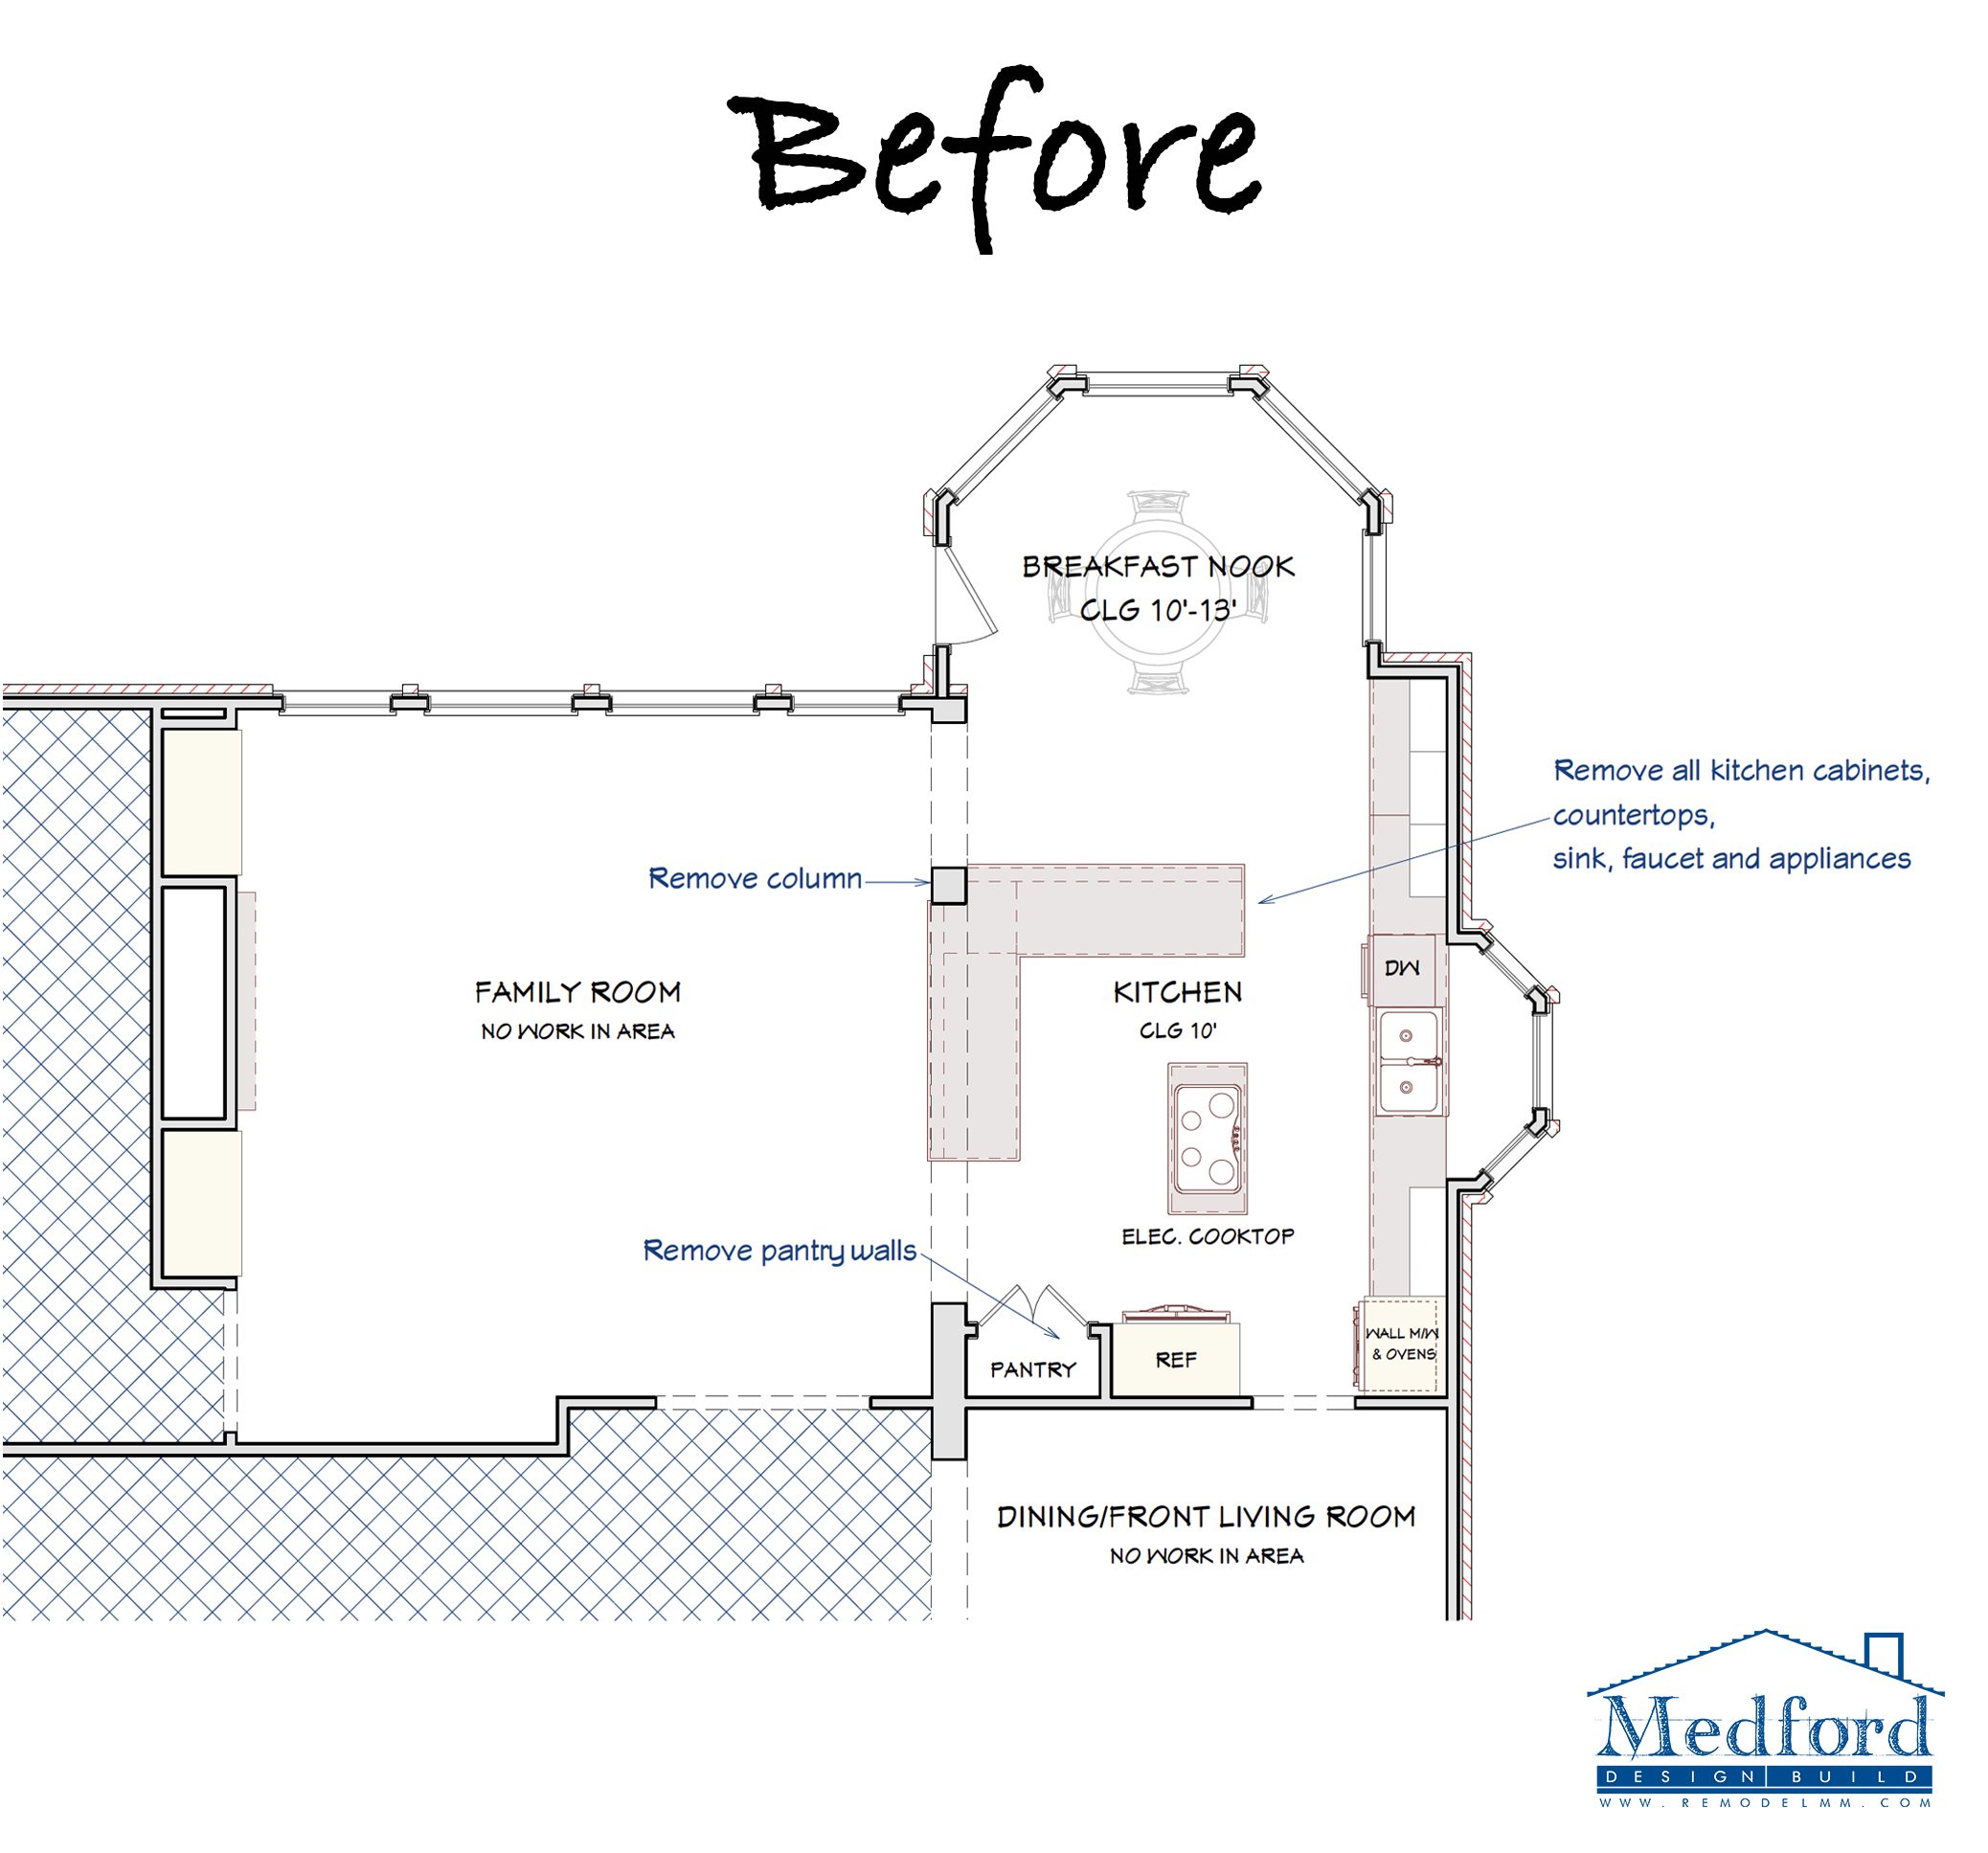 Kitchen remodel floor plan before